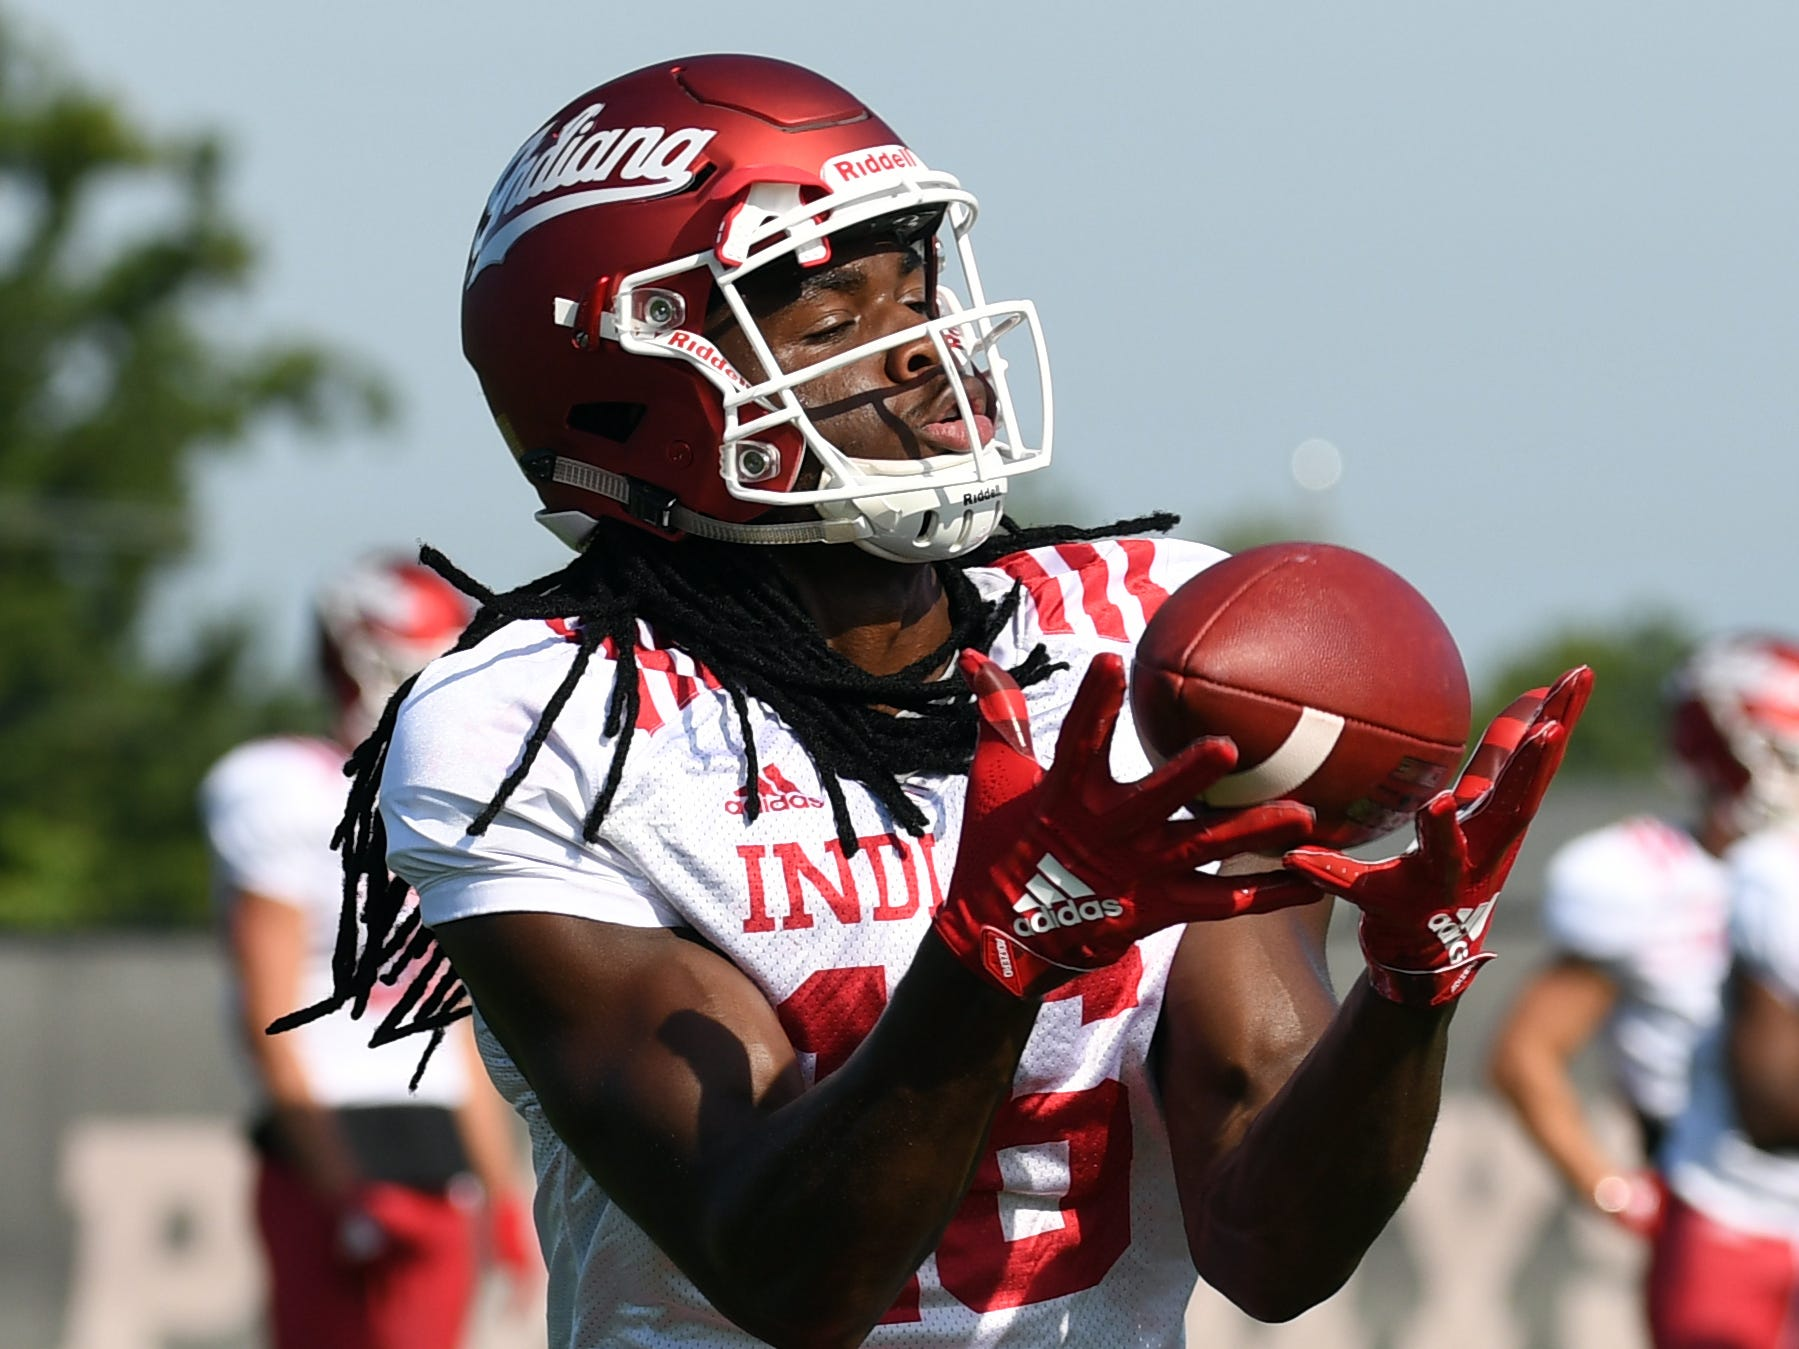 Indiana Hoosiers wide receiver David Felton (16) catches a pass during practice at Mellencamp Pavilion in Bloomington, Ind., on Monday, August 6, 2018.